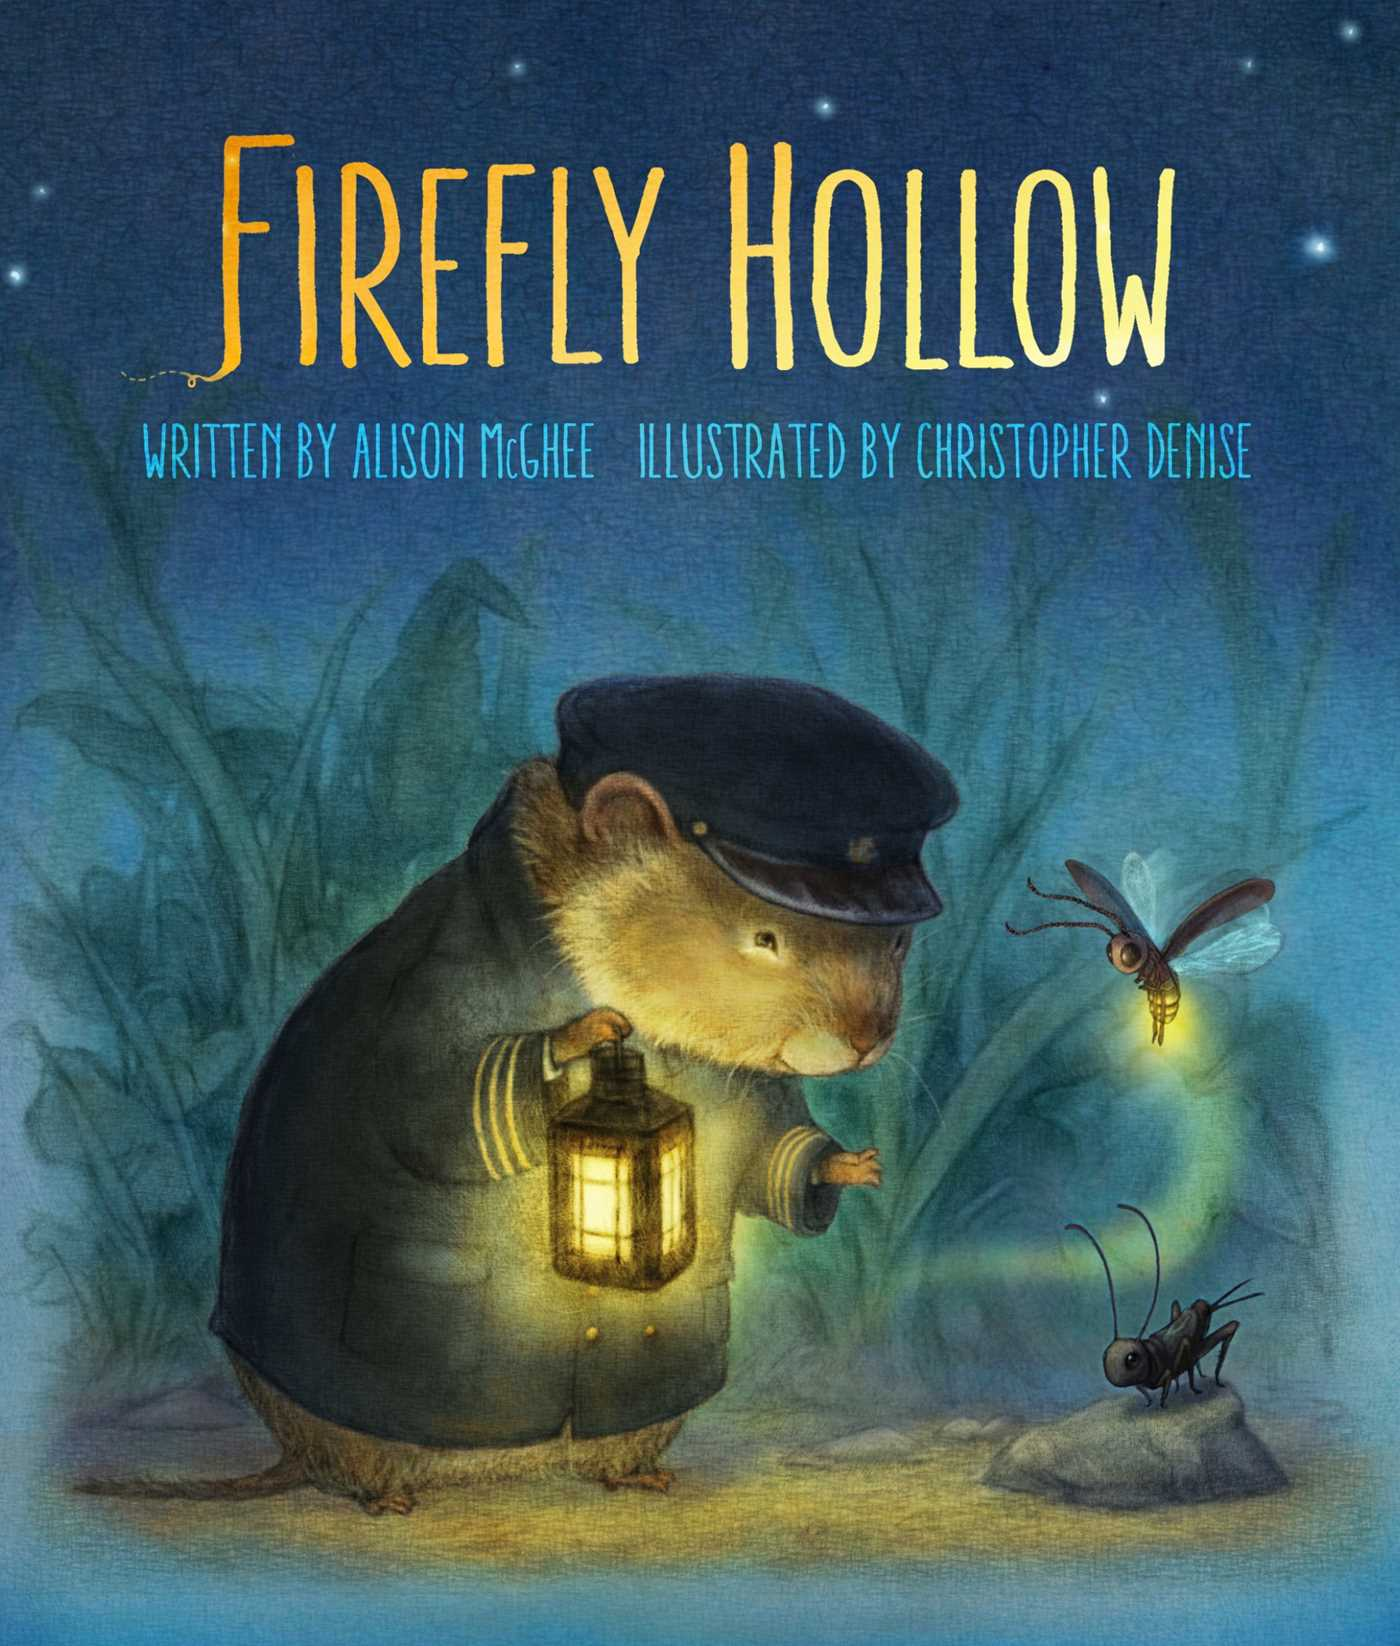 Firefly hollow book by alison mcghee christopher denise firefly hollow 9781442423374 hr fandeluxe Document